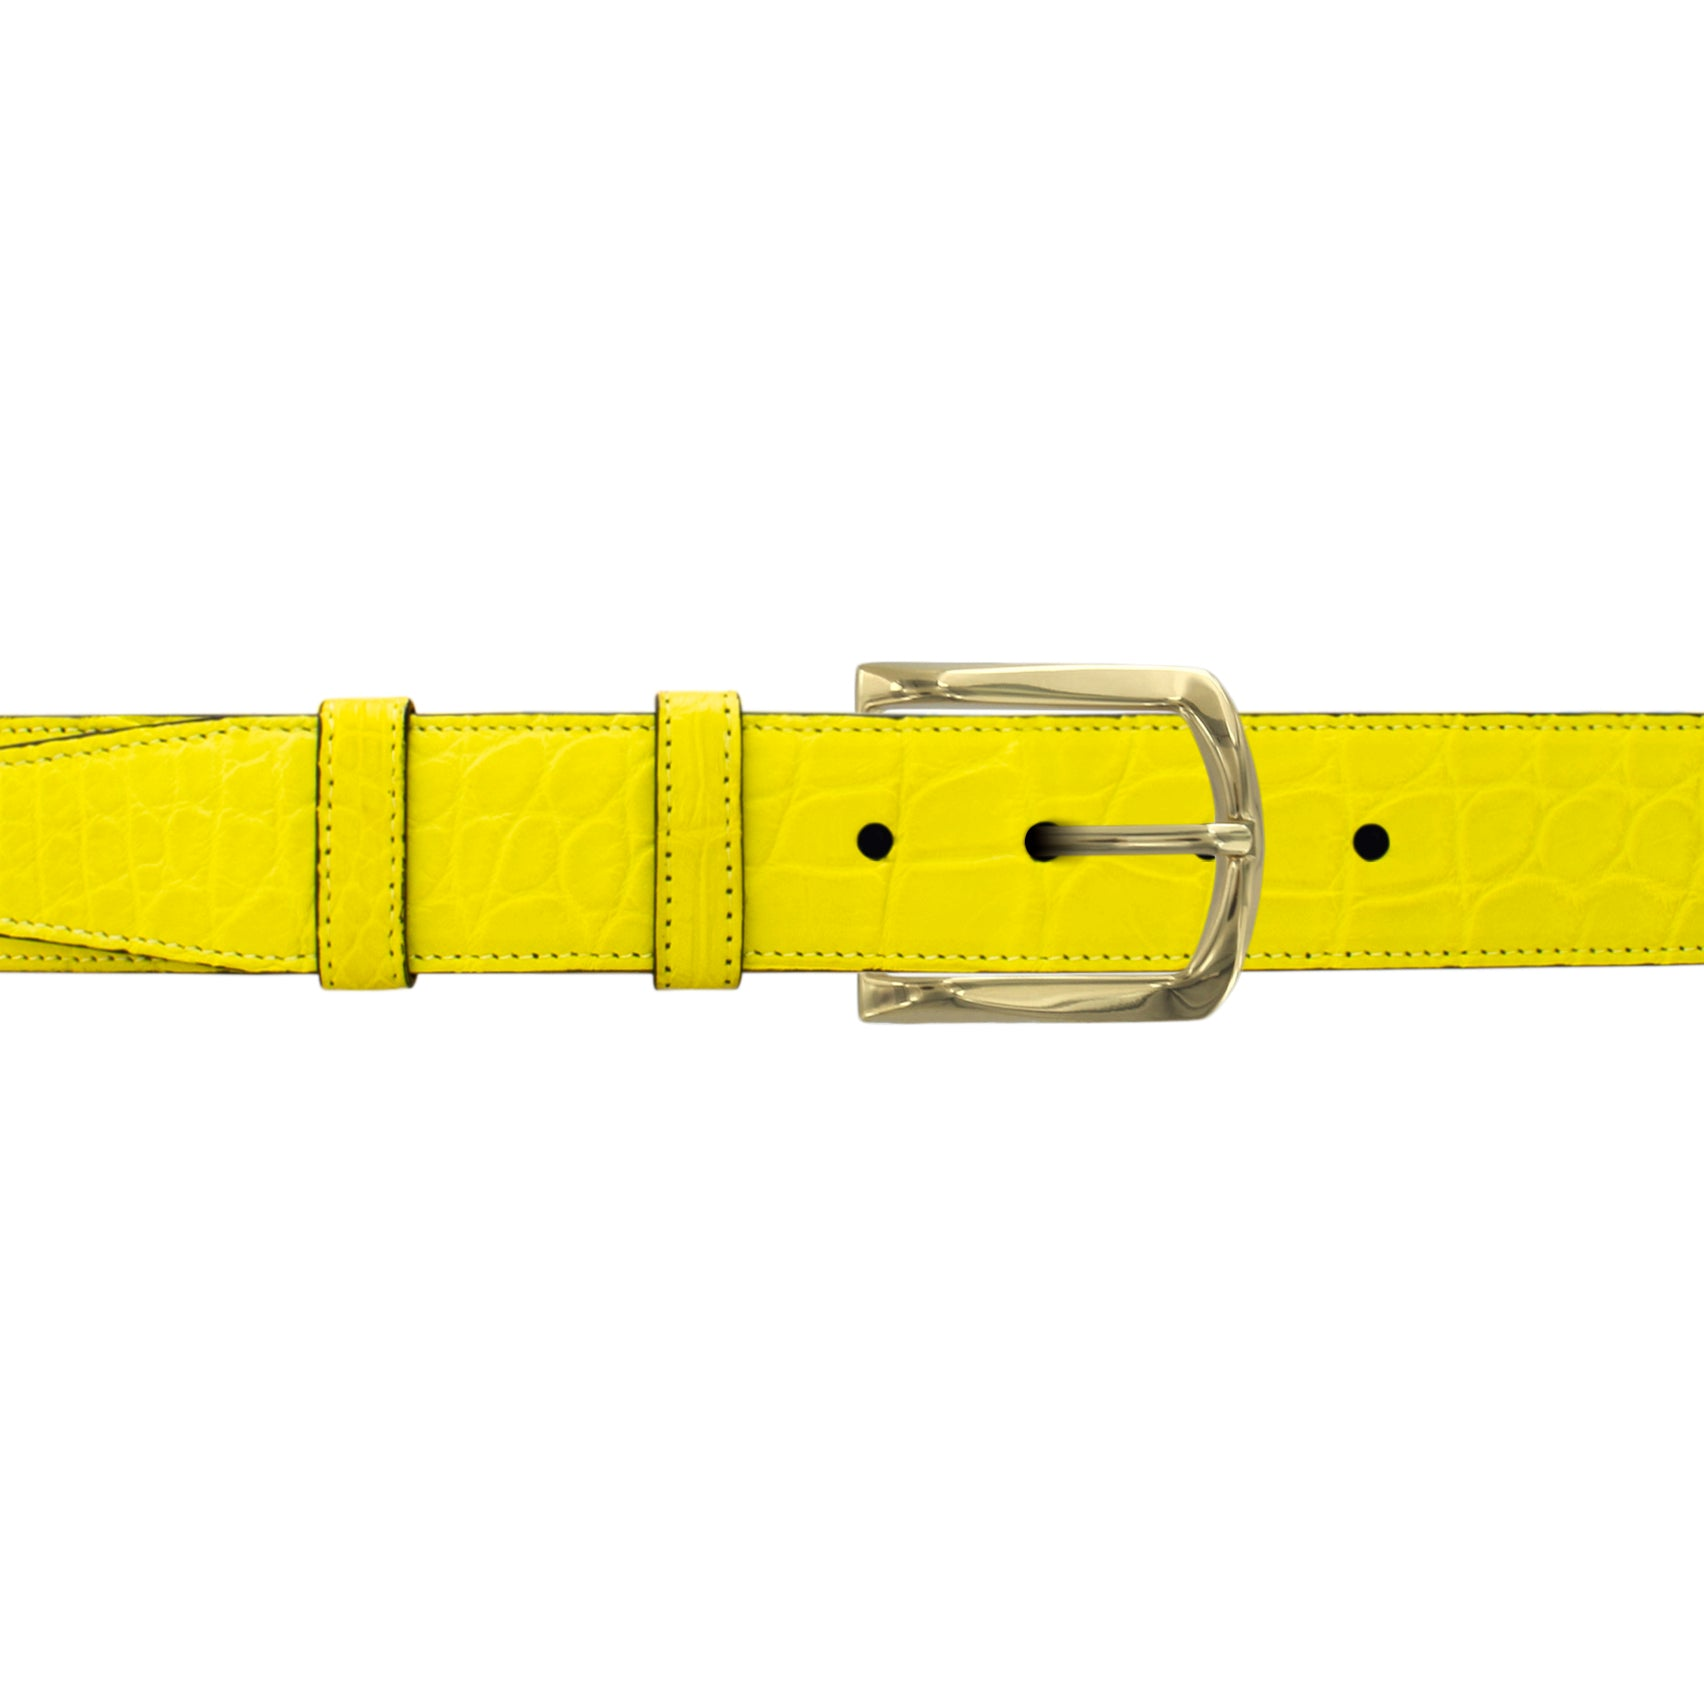 "1 1/2"" Canary Seasonal Belt with Oxford Cocktail Buckle in Brass"